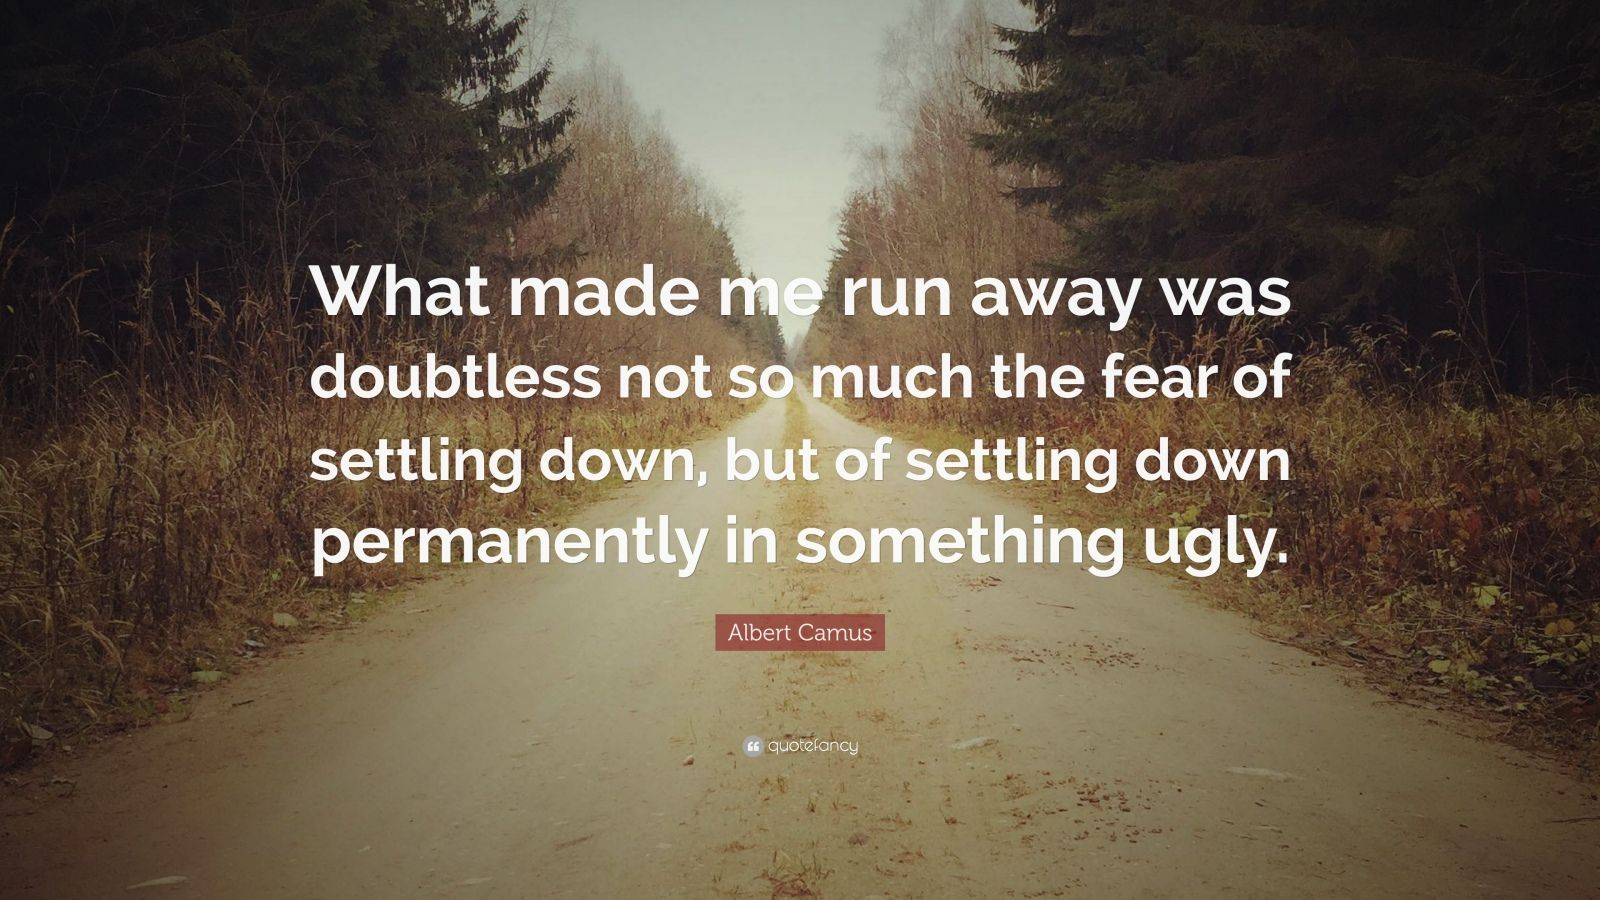 """Albert Camus Quote: """"What made me run away was doubtless not so much the fear of settling down, but of settling down permanently in something ugly."""""""